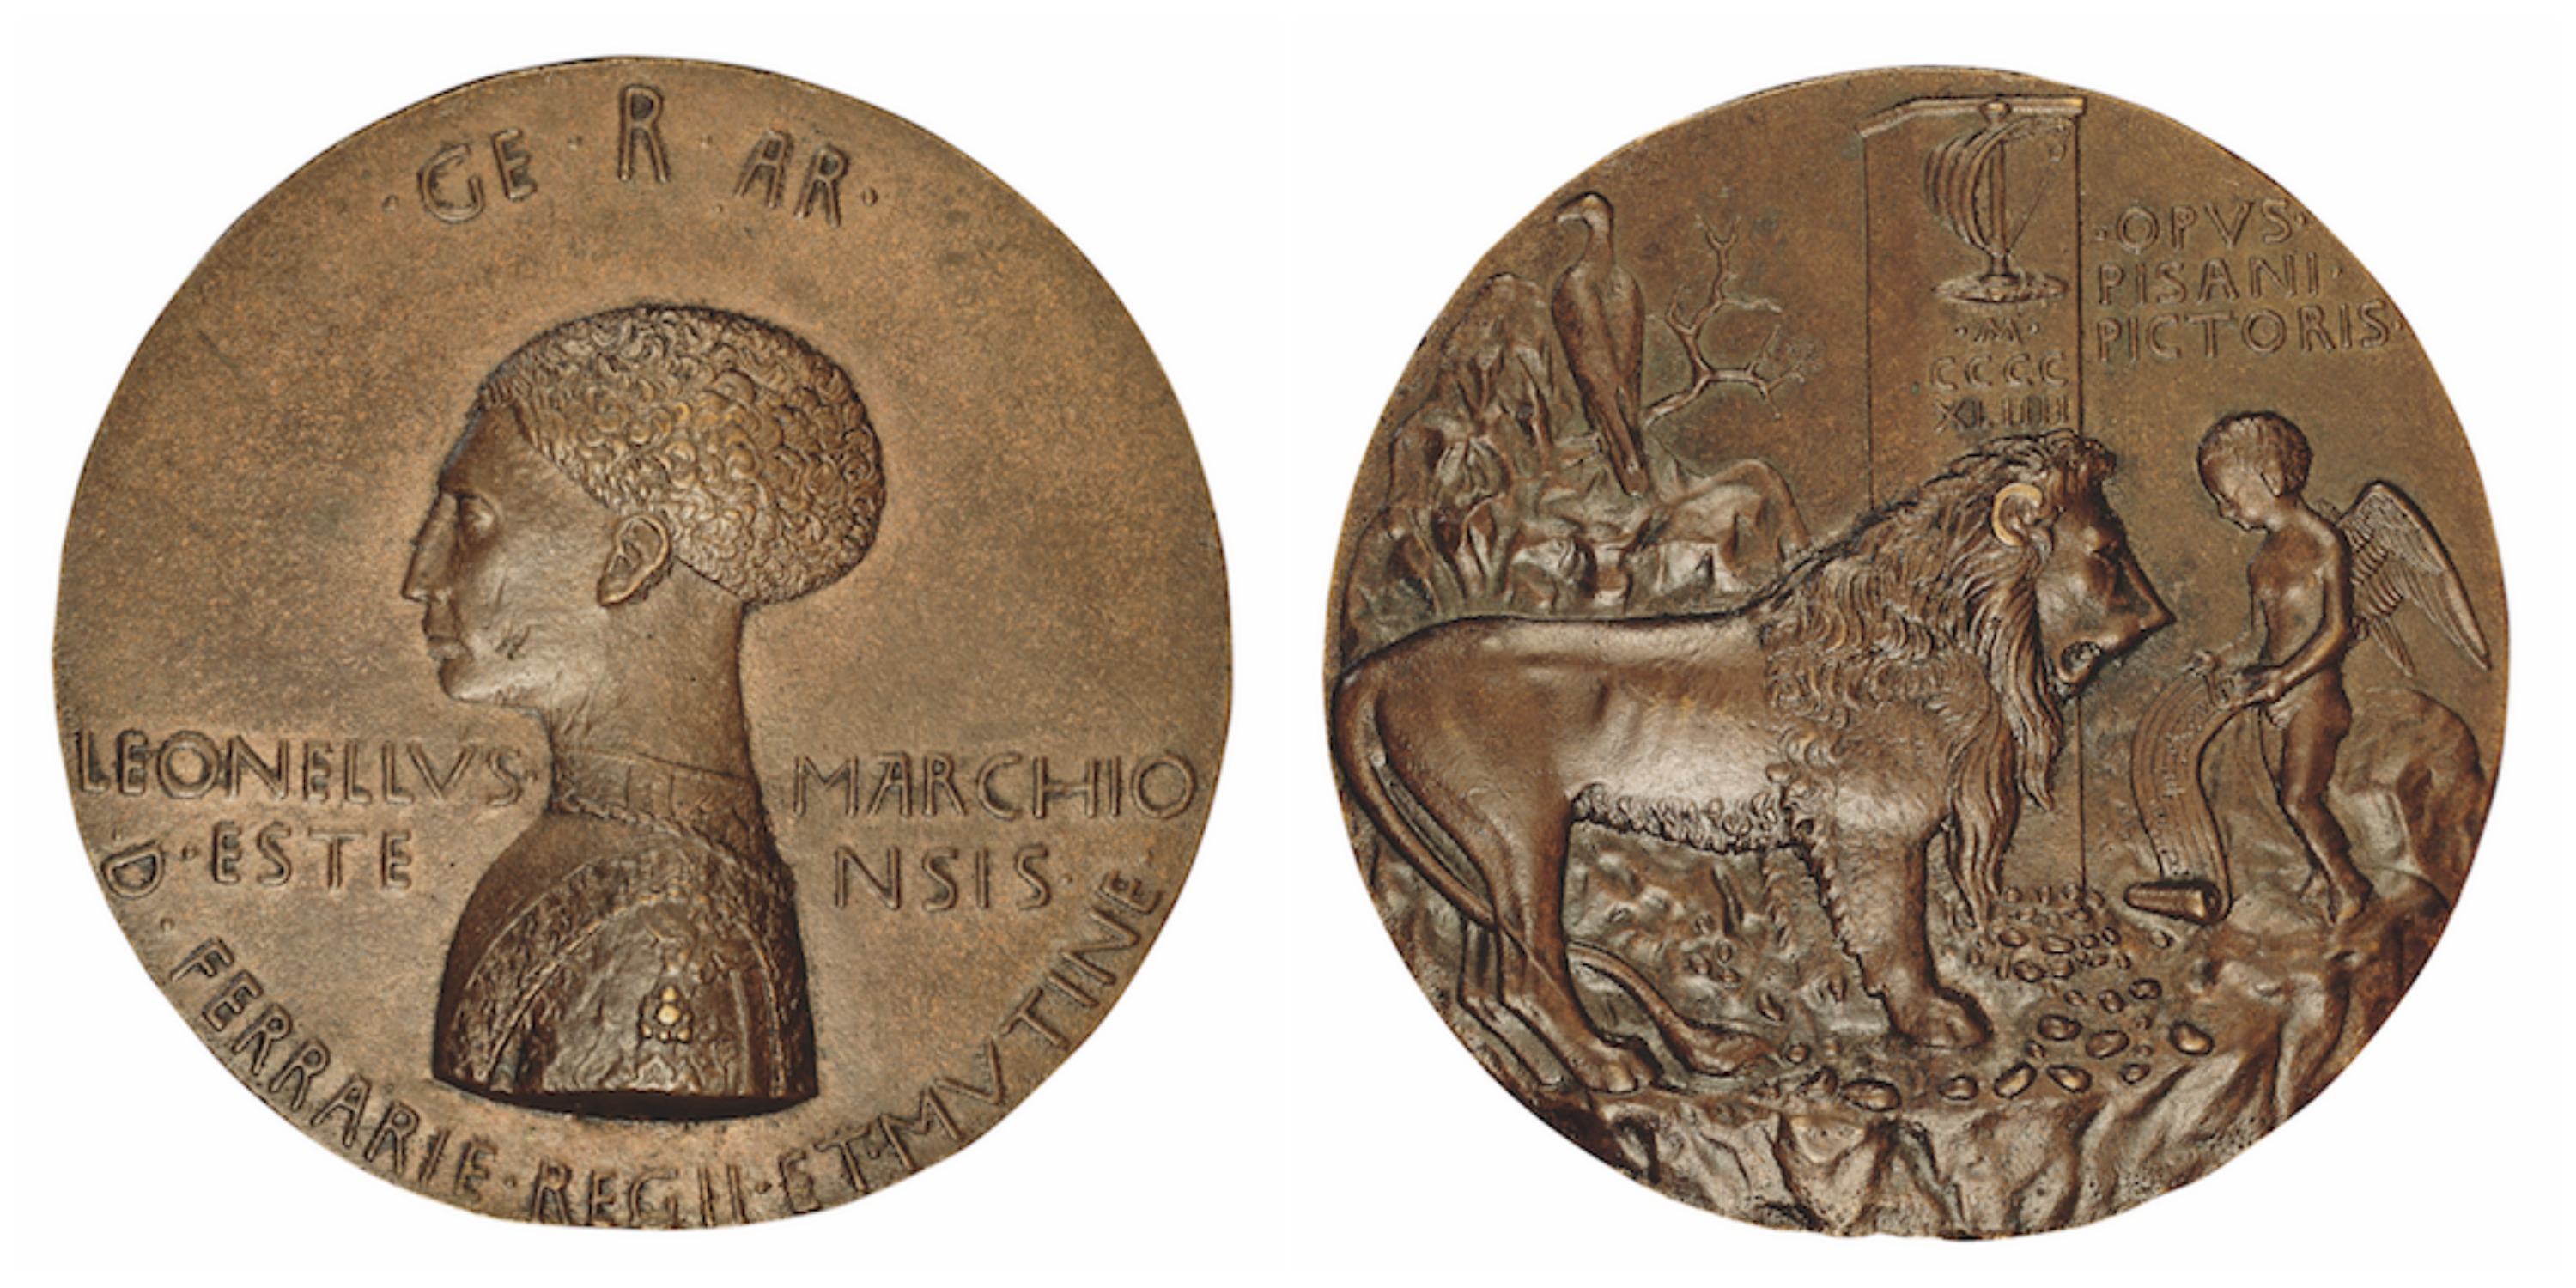 Pisanello. Medal of Leonello d'Este (obverse and reverse) 1441–4. Bronze, diameter 10.08cm (315∕16in). National Gallery of Art, Washington DC, Samuel H. Kress Collection, 1957.14.602.a and 1957.14.602.b. | Courtesy of Laurence King Publishing